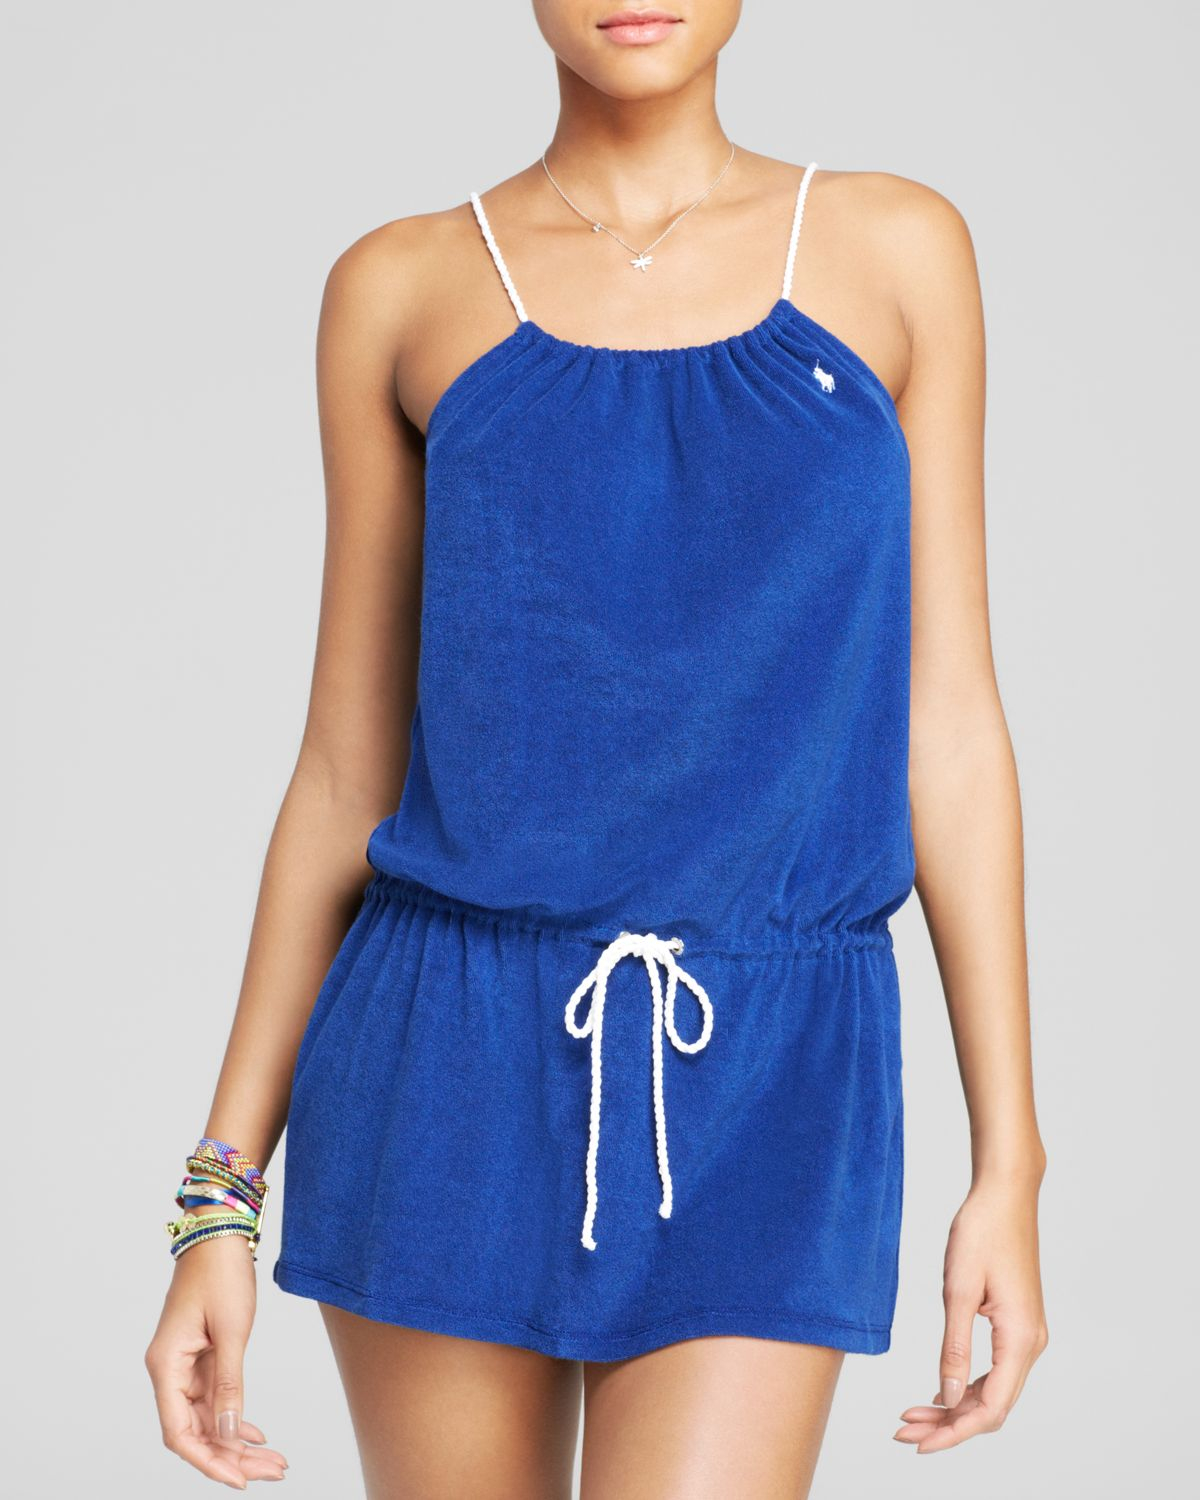 Find great deals on eBay for navy blue swimsuit cover up. Shop with confidence.